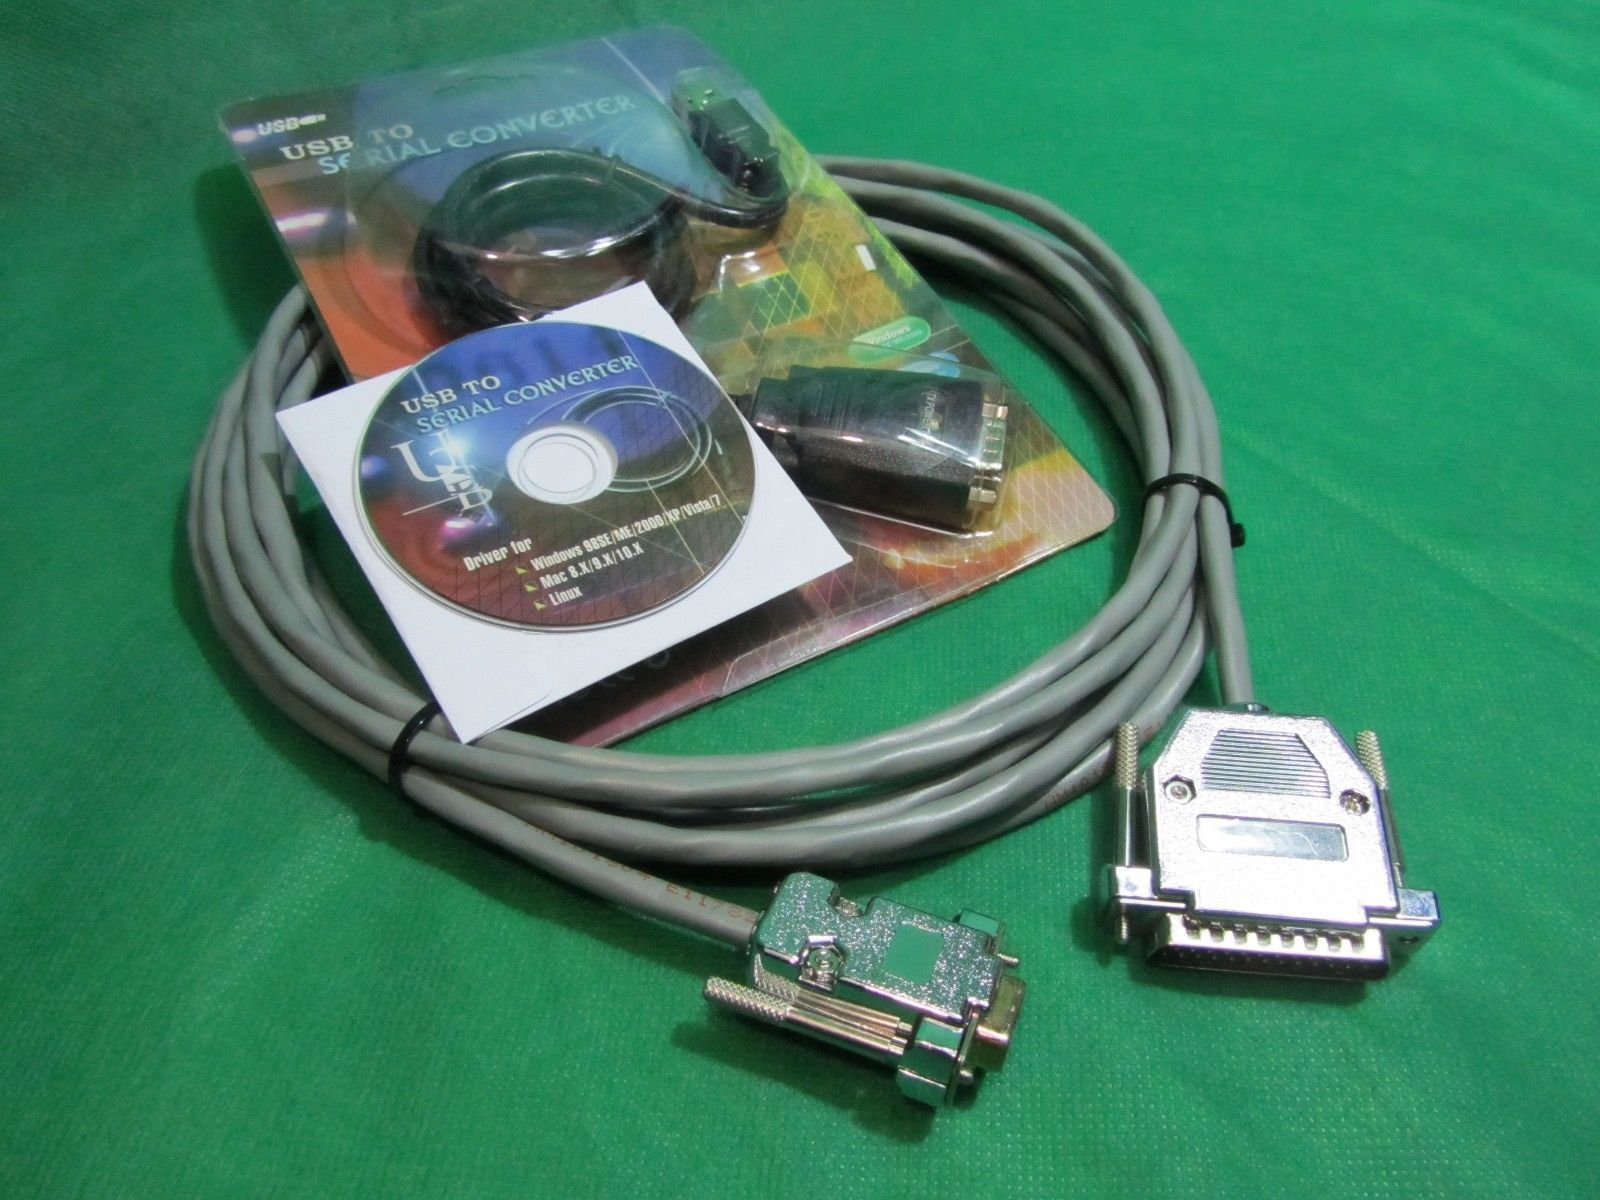 Primary image for 30 ft Quality CNC DNC RS232 Serial Cable DB9F to DB25M for PC and Laptop Kit.